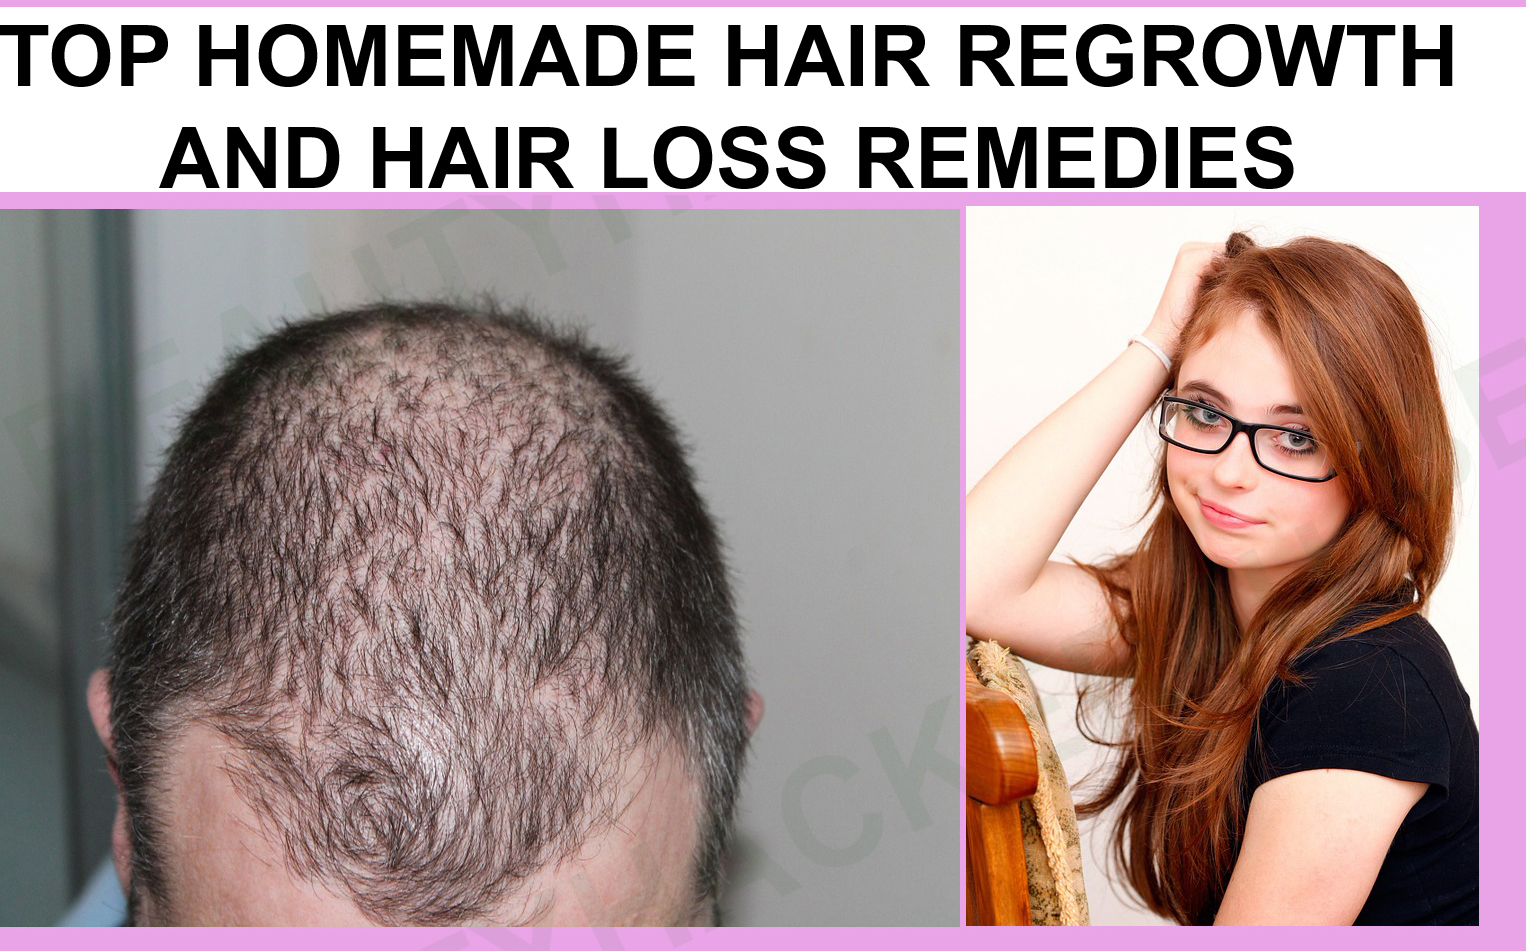 Home remedies for hair regrowth in the scalp